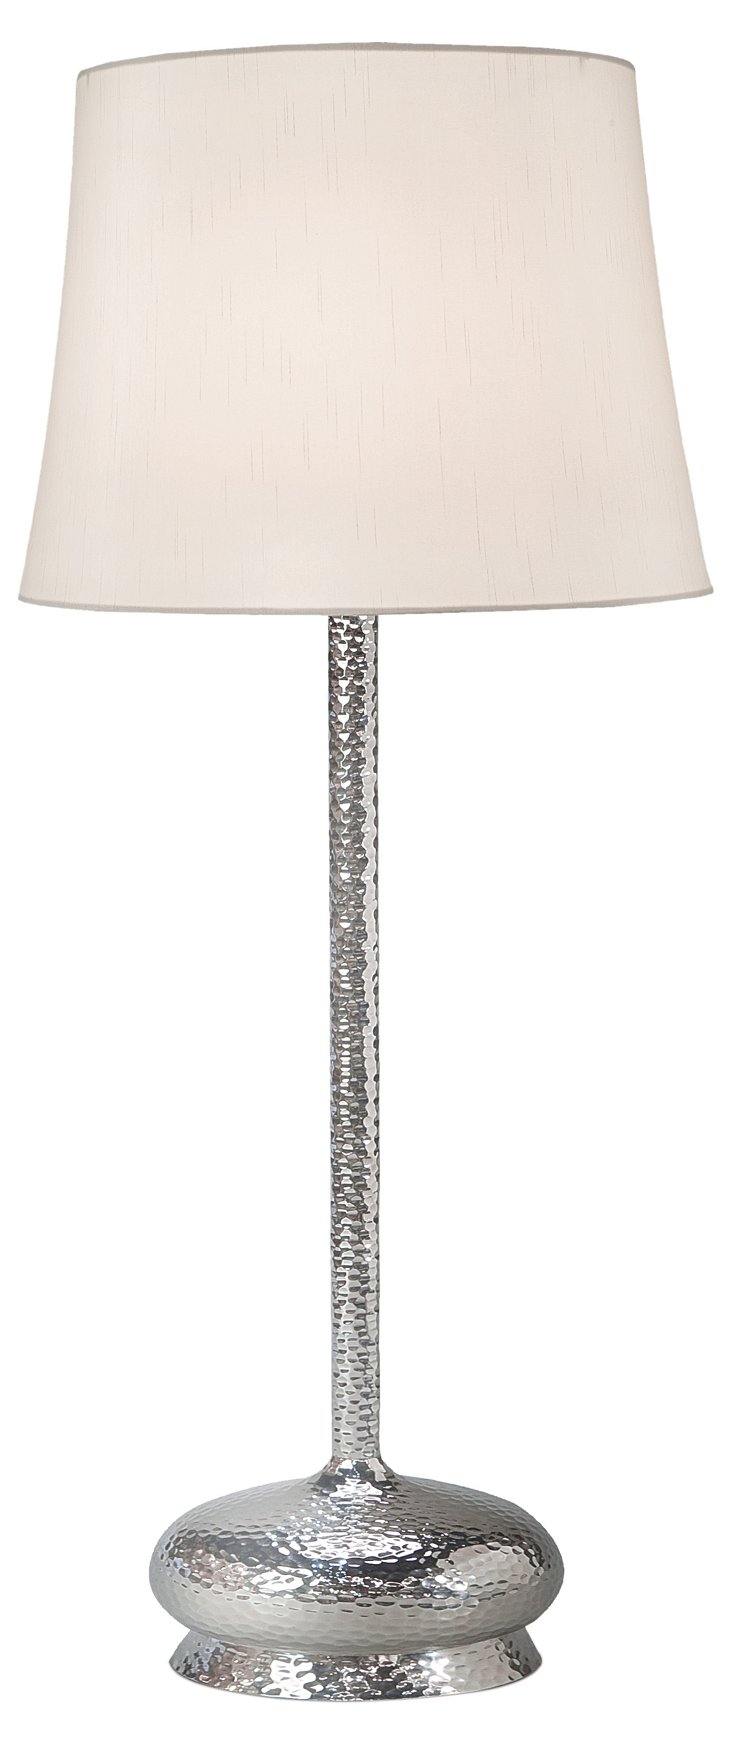 Hammered Table Lamp, Nickel